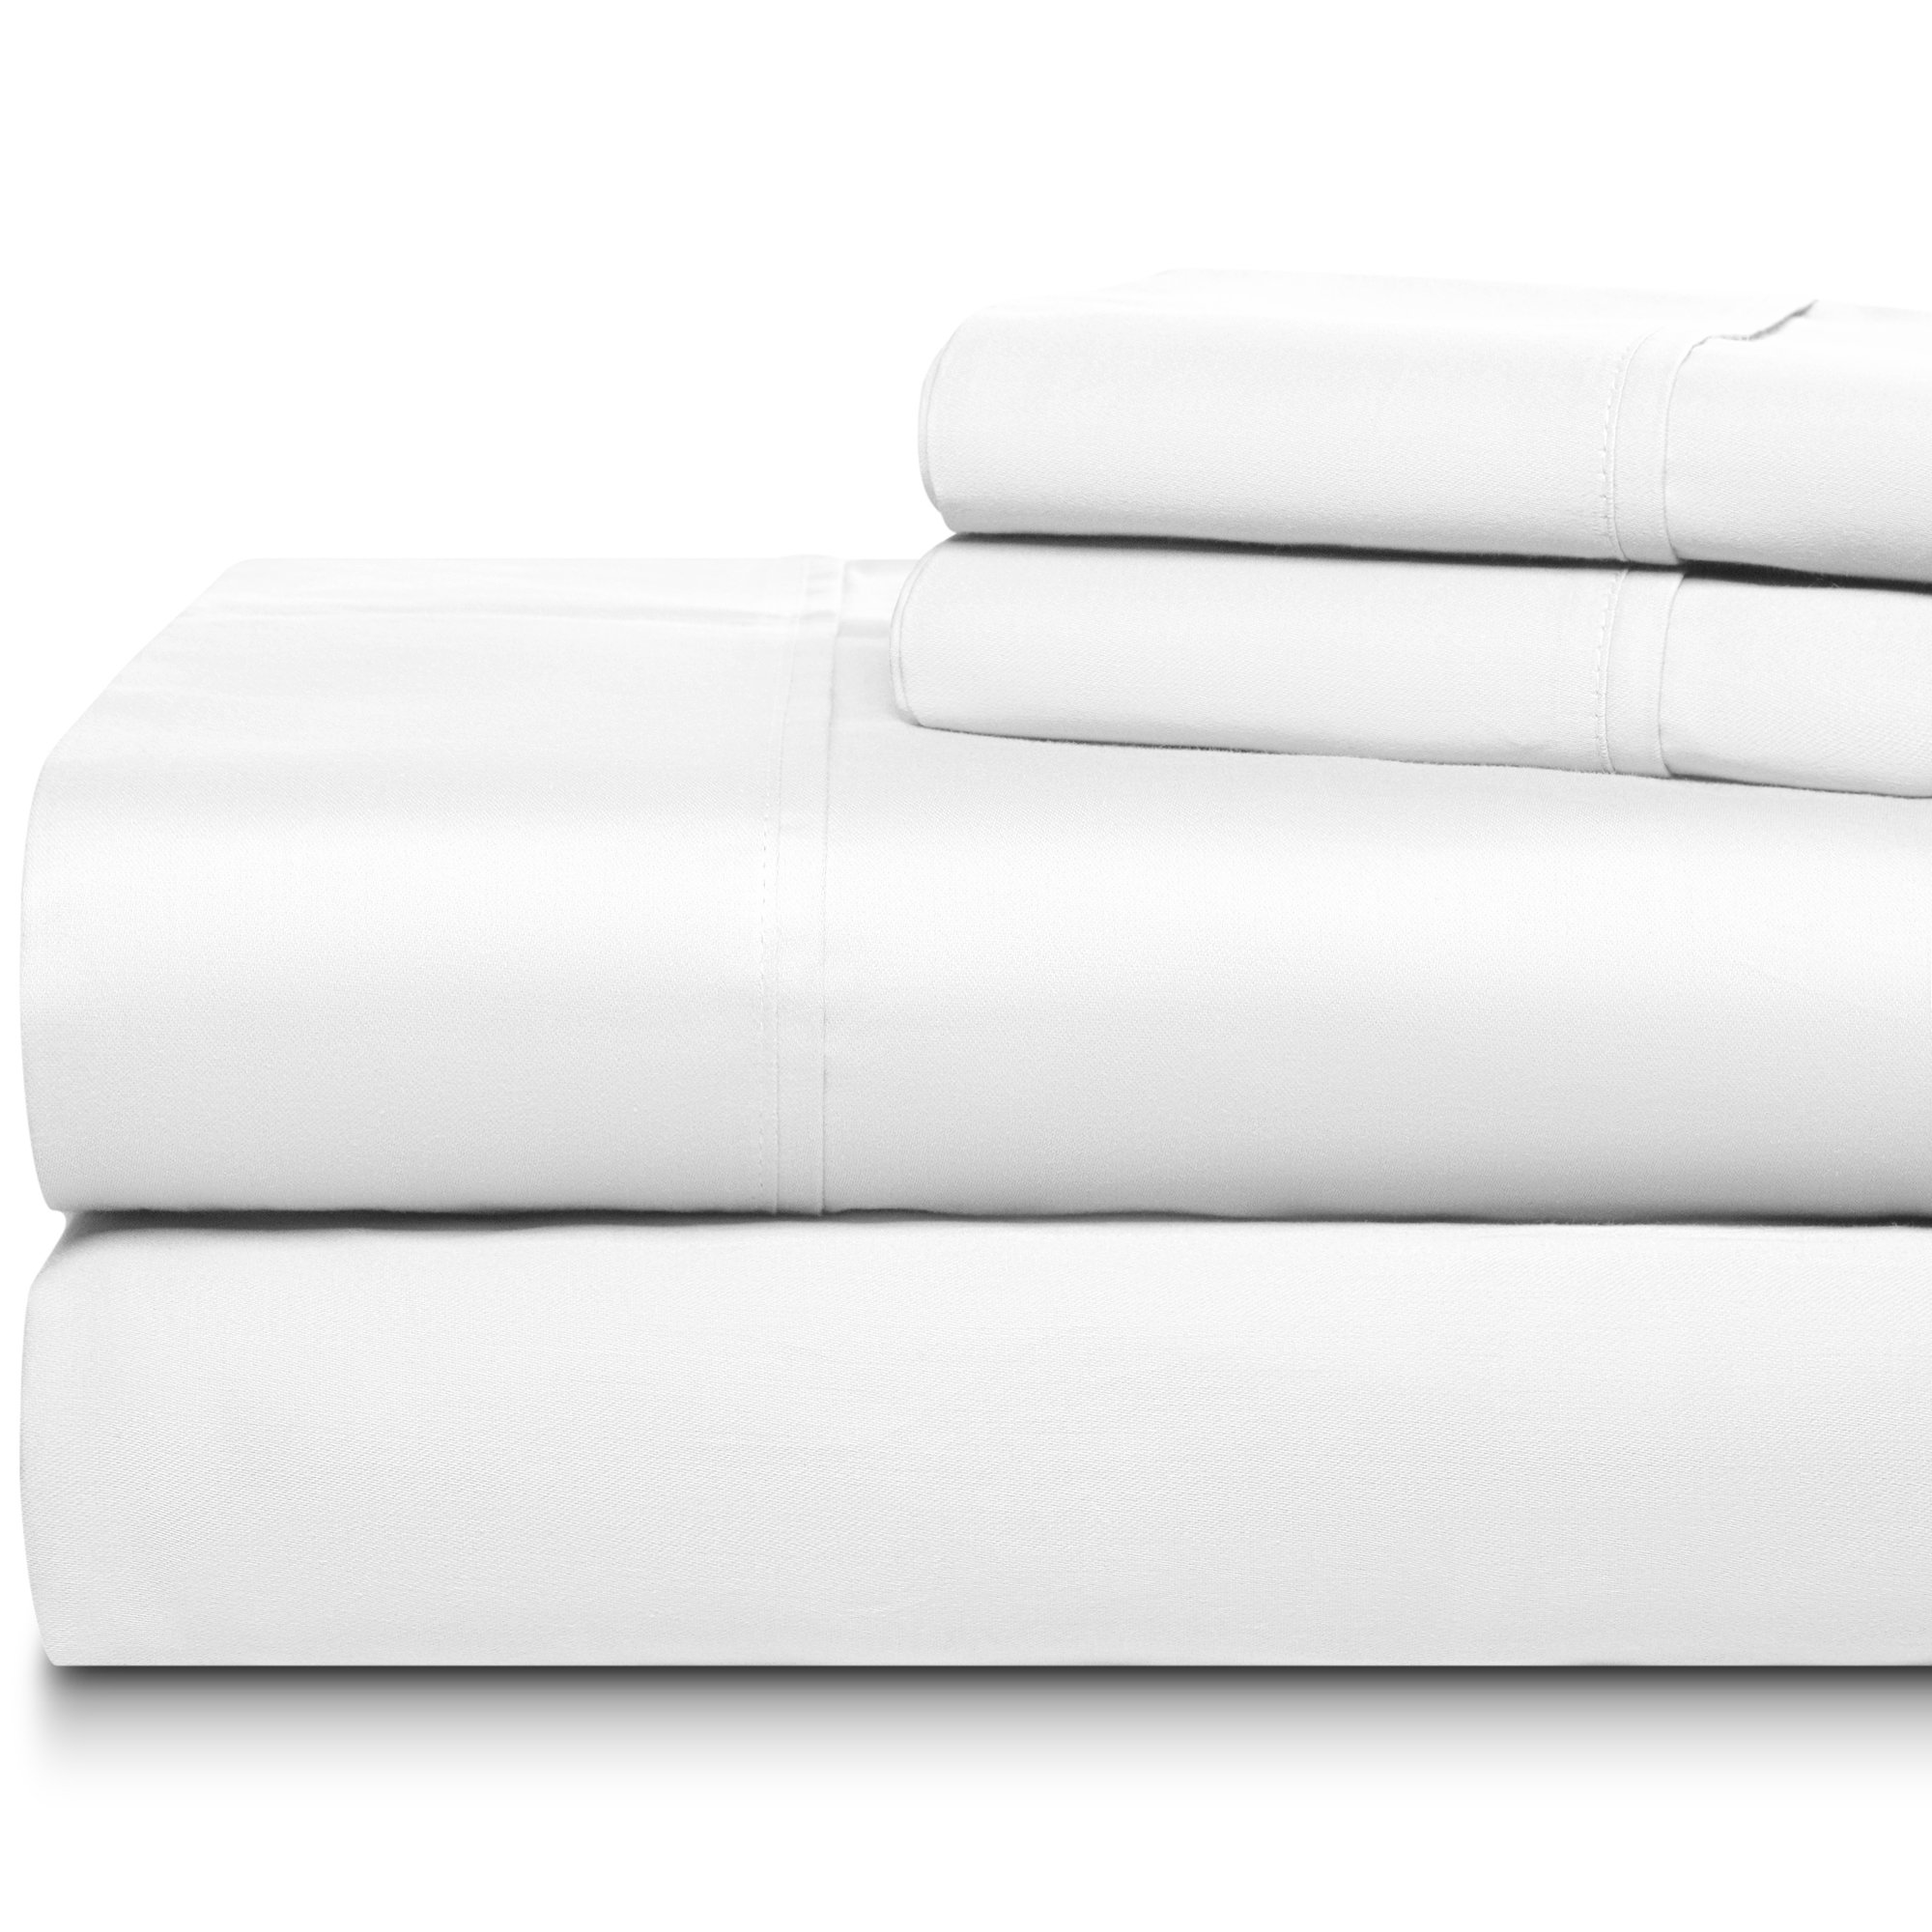 Soft-On 300 Thread Count 4 Piece Luxury Sheet Sets 100% Long Staple Soft Egyptian Quality Cotton with 15'' Deep Pockets, Full, Smooth and Soft Sateen Weave, Anti-Fade Luxury Hotel Collection, White